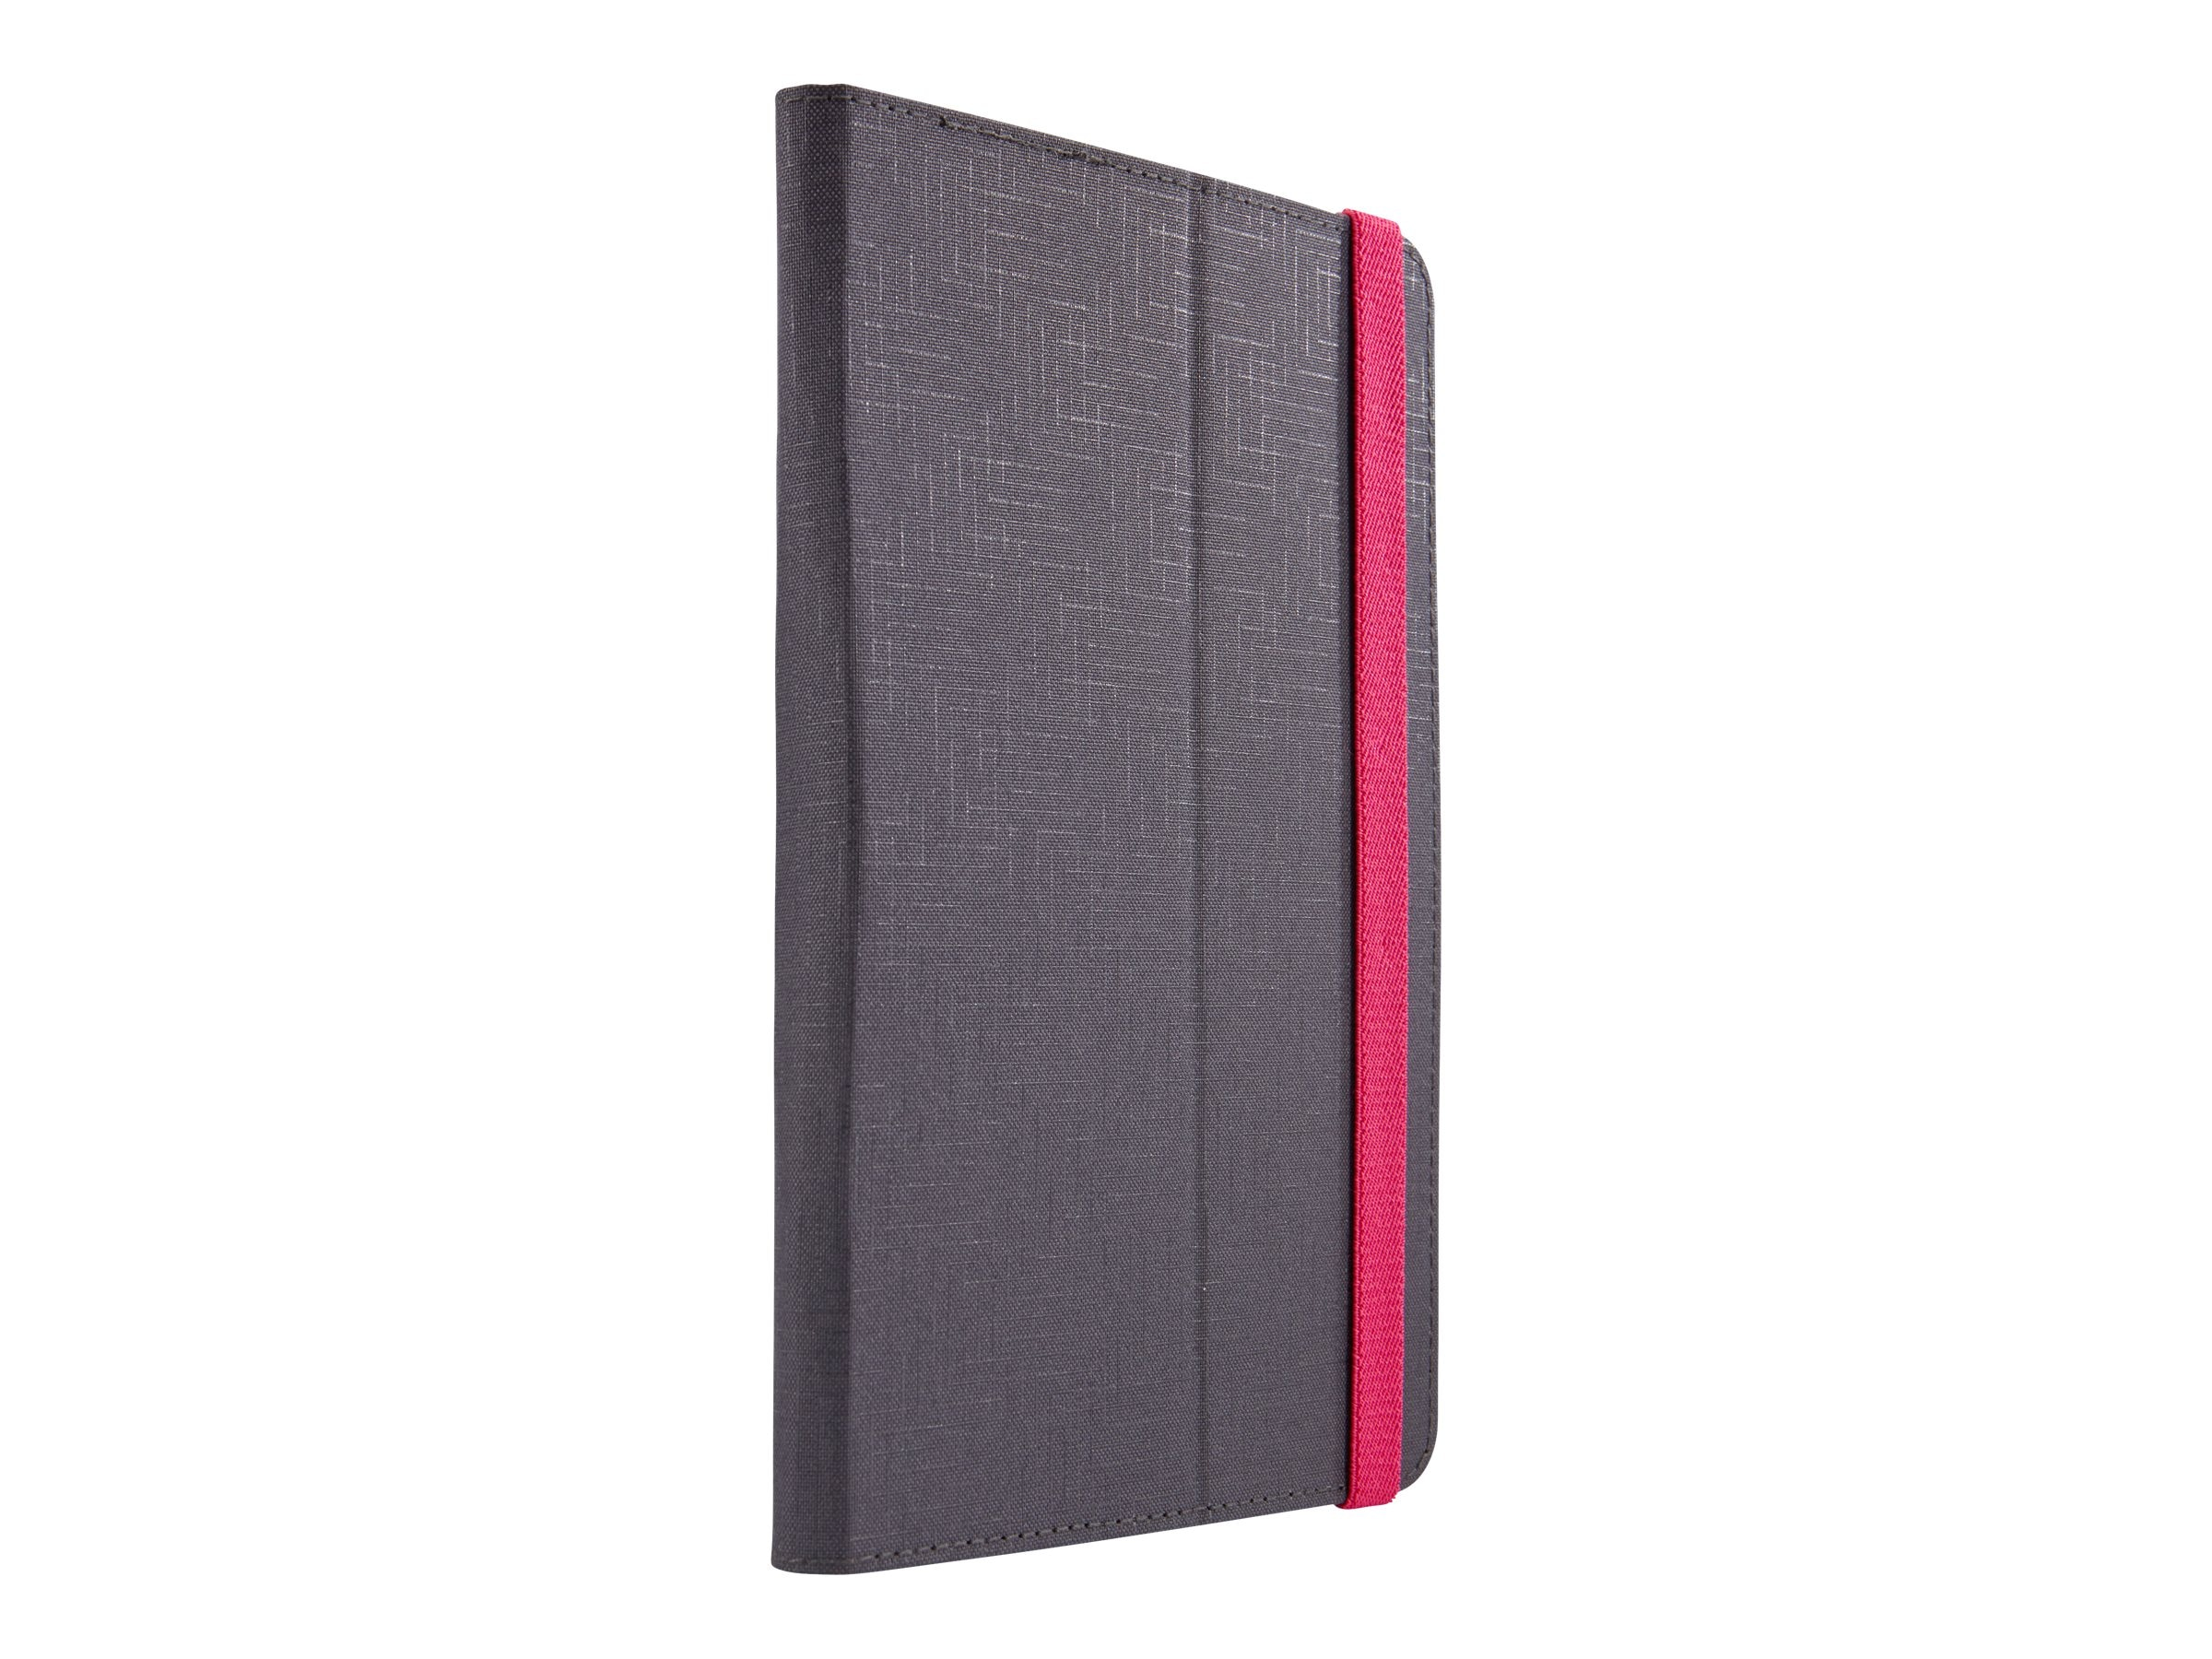 Case Logic Universal Folio for 8 Tablet, Anthracite, CBUE-1108ANTHR, 17423721, Carrying Cases - Tablets & eReaders